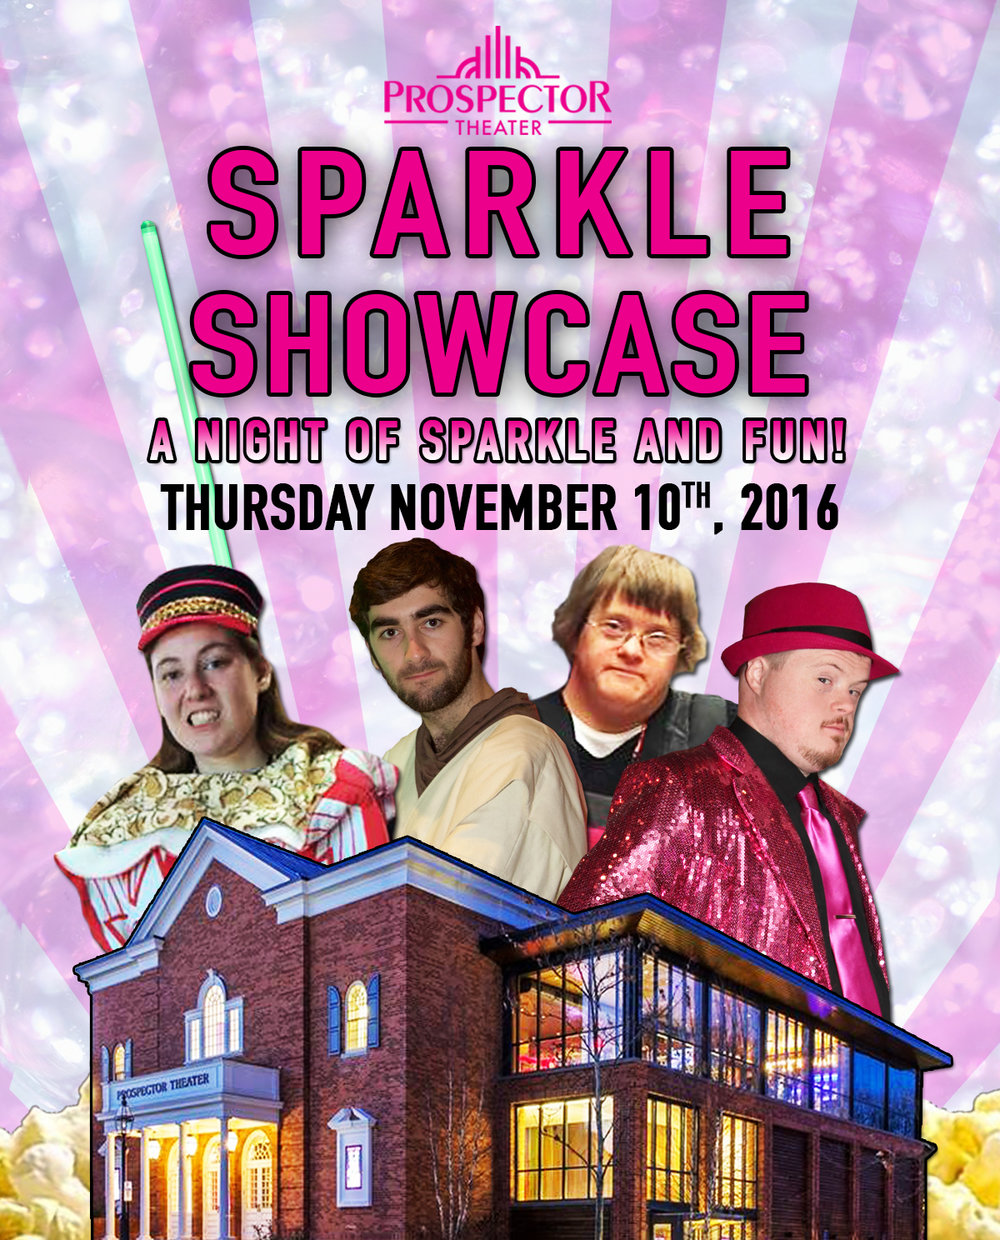 sparkle_showcase_postcard.jpg